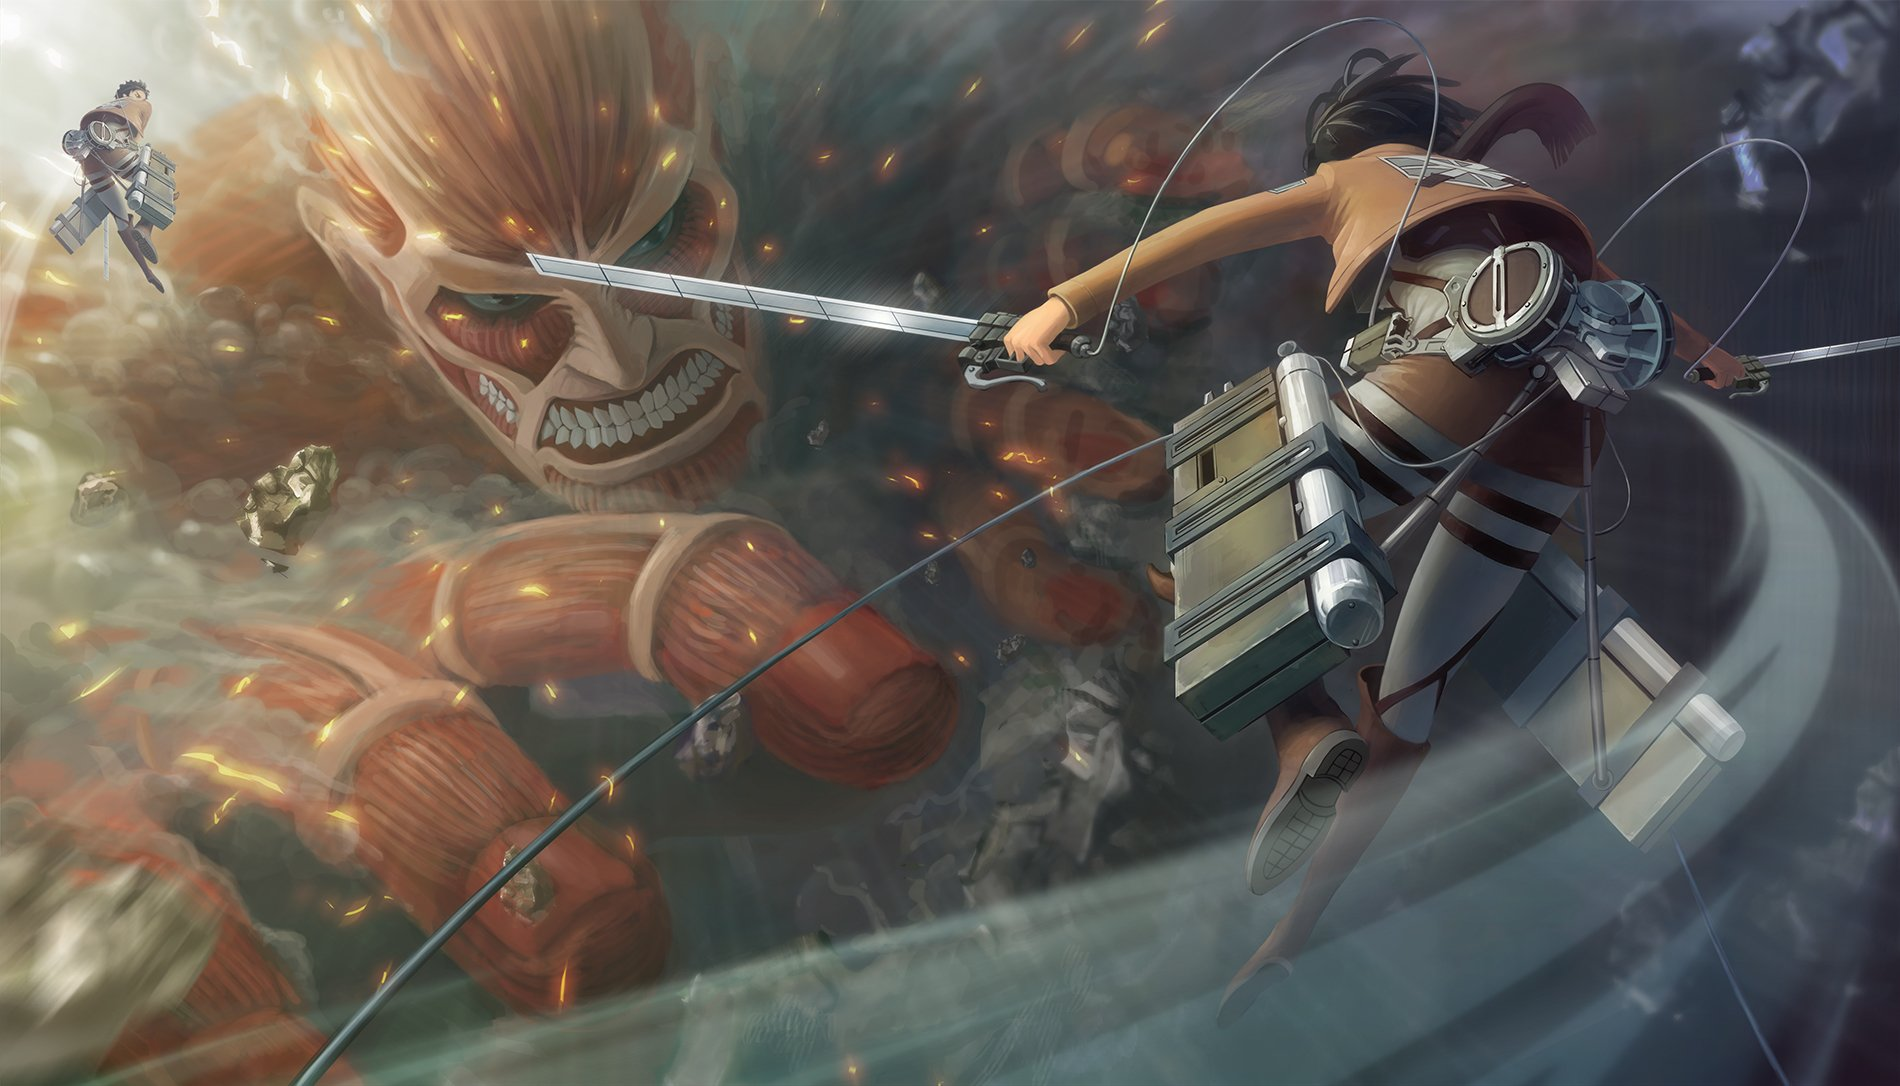 1934 Attack On Titan Hd Wallpapers Background Images Wallpaper